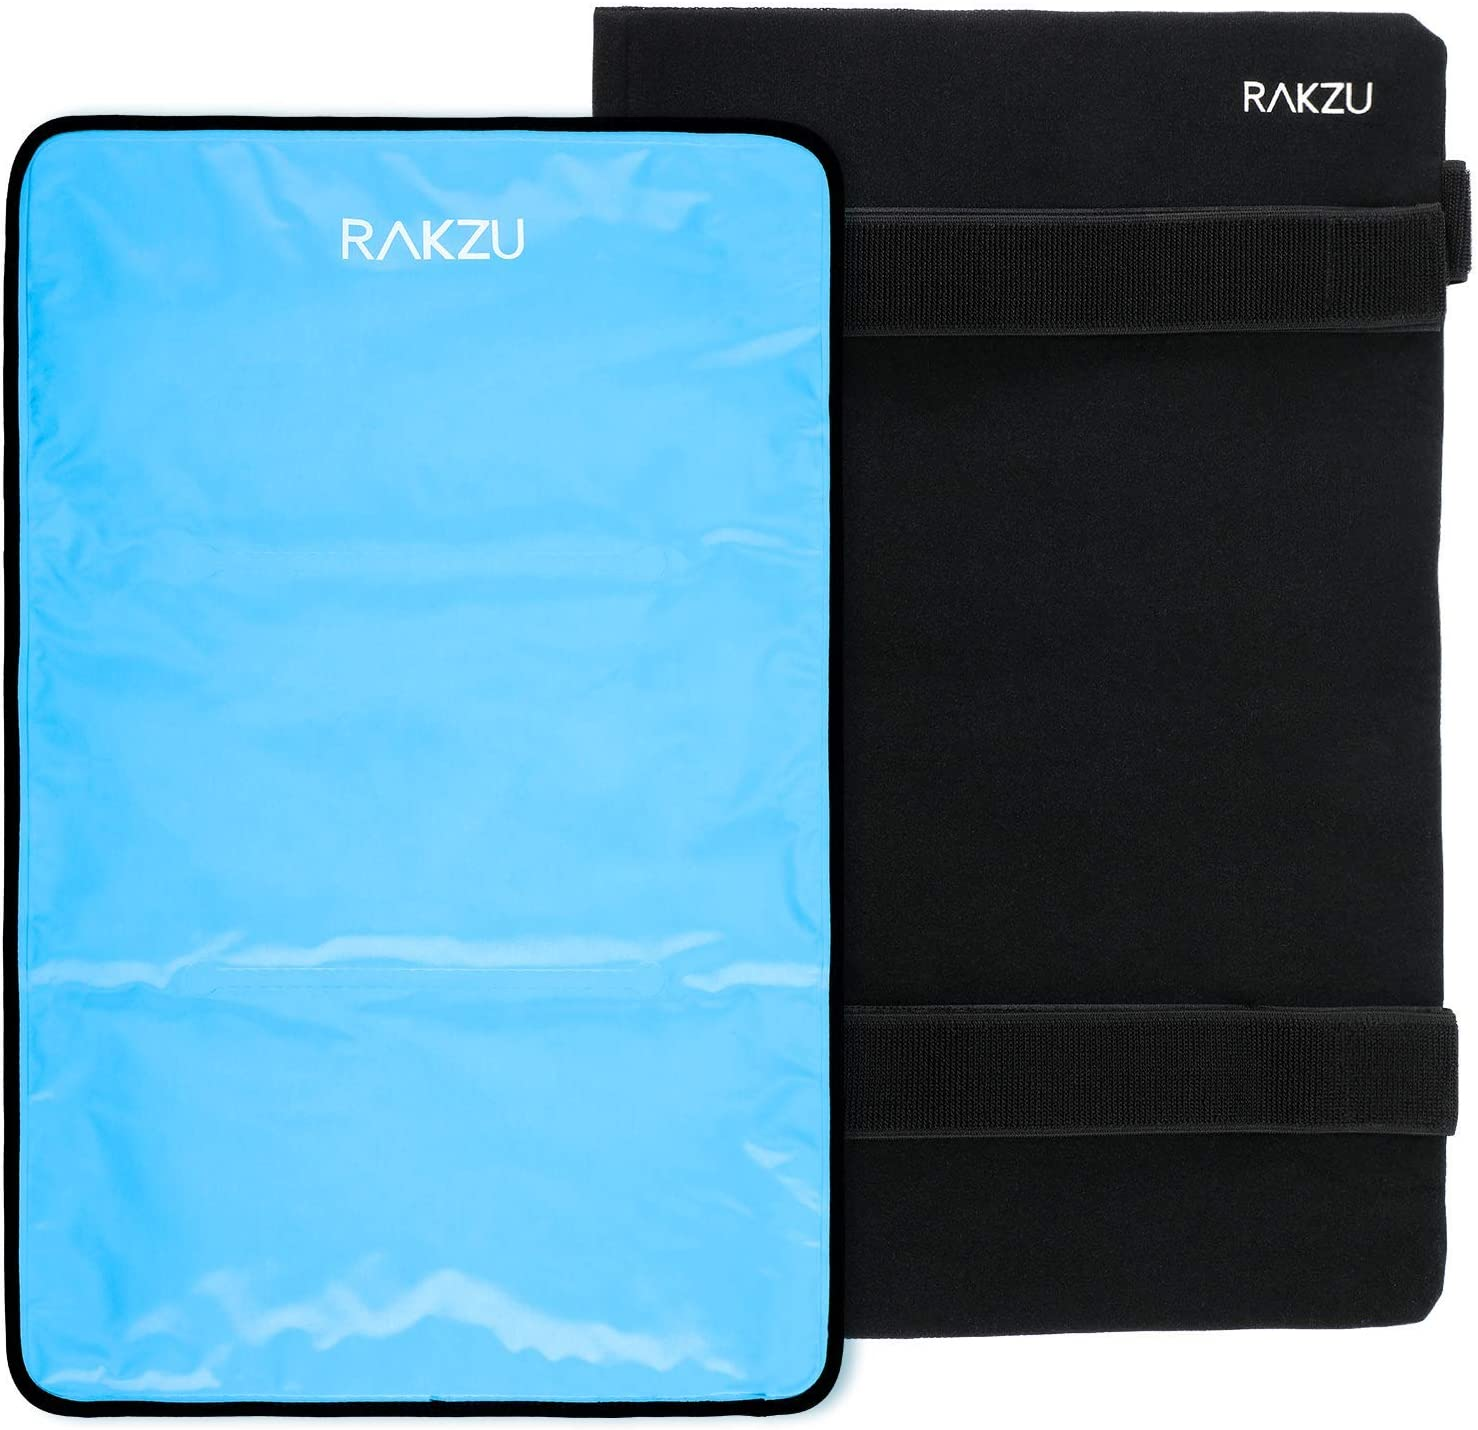 Extra Large Ice Pack RAKZU Cold Therapy Reusable Gel Pack Large 13